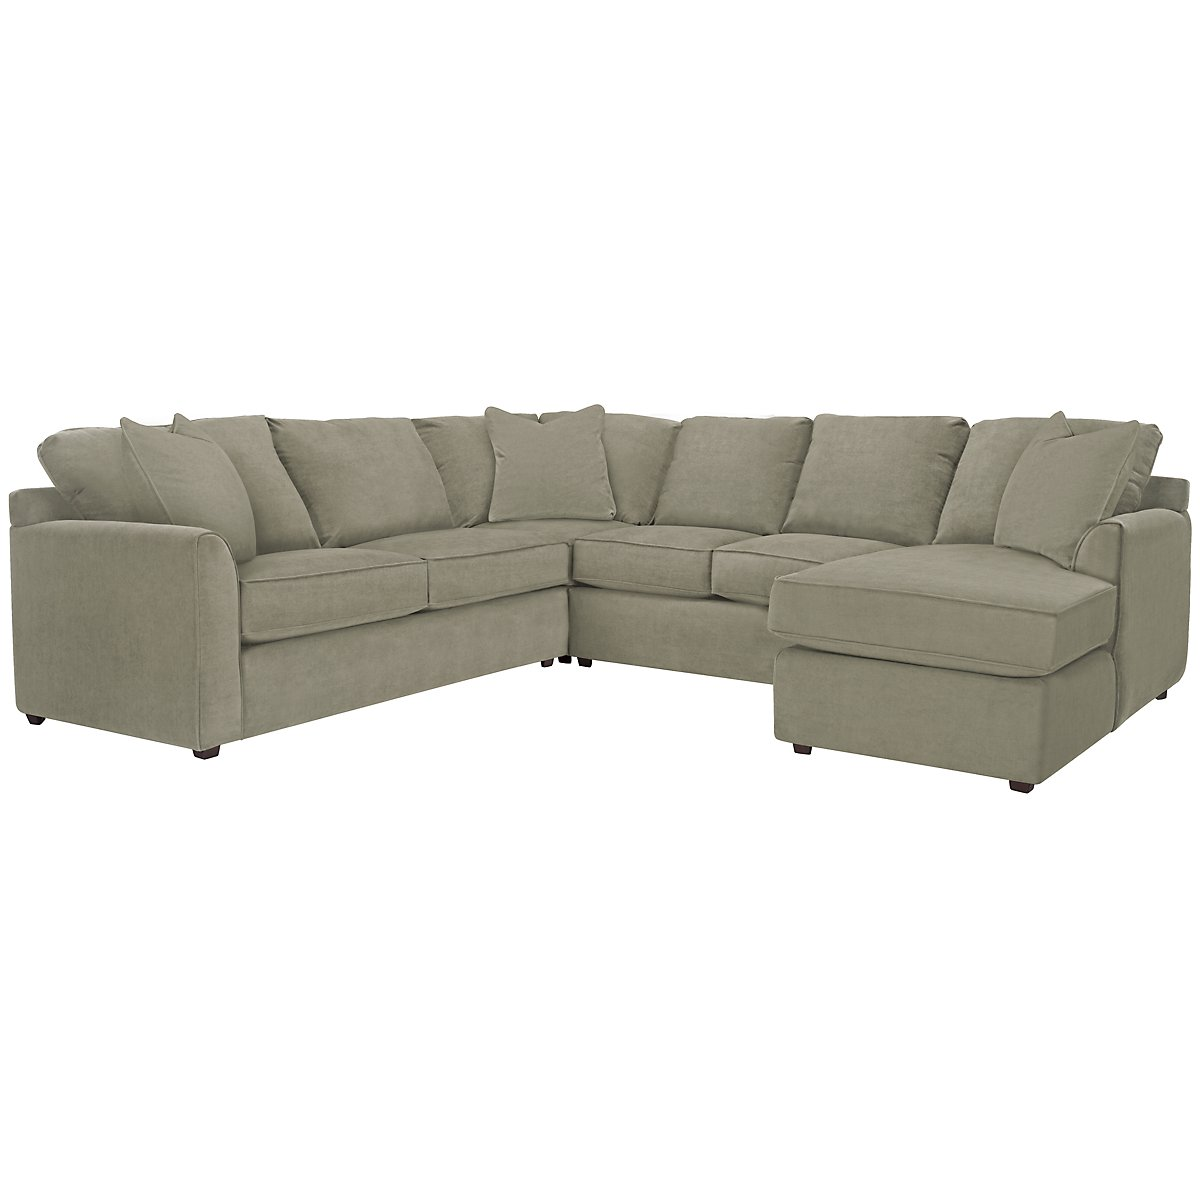 Express3 Lt Green Microfiber Small Right Chaise Sectional